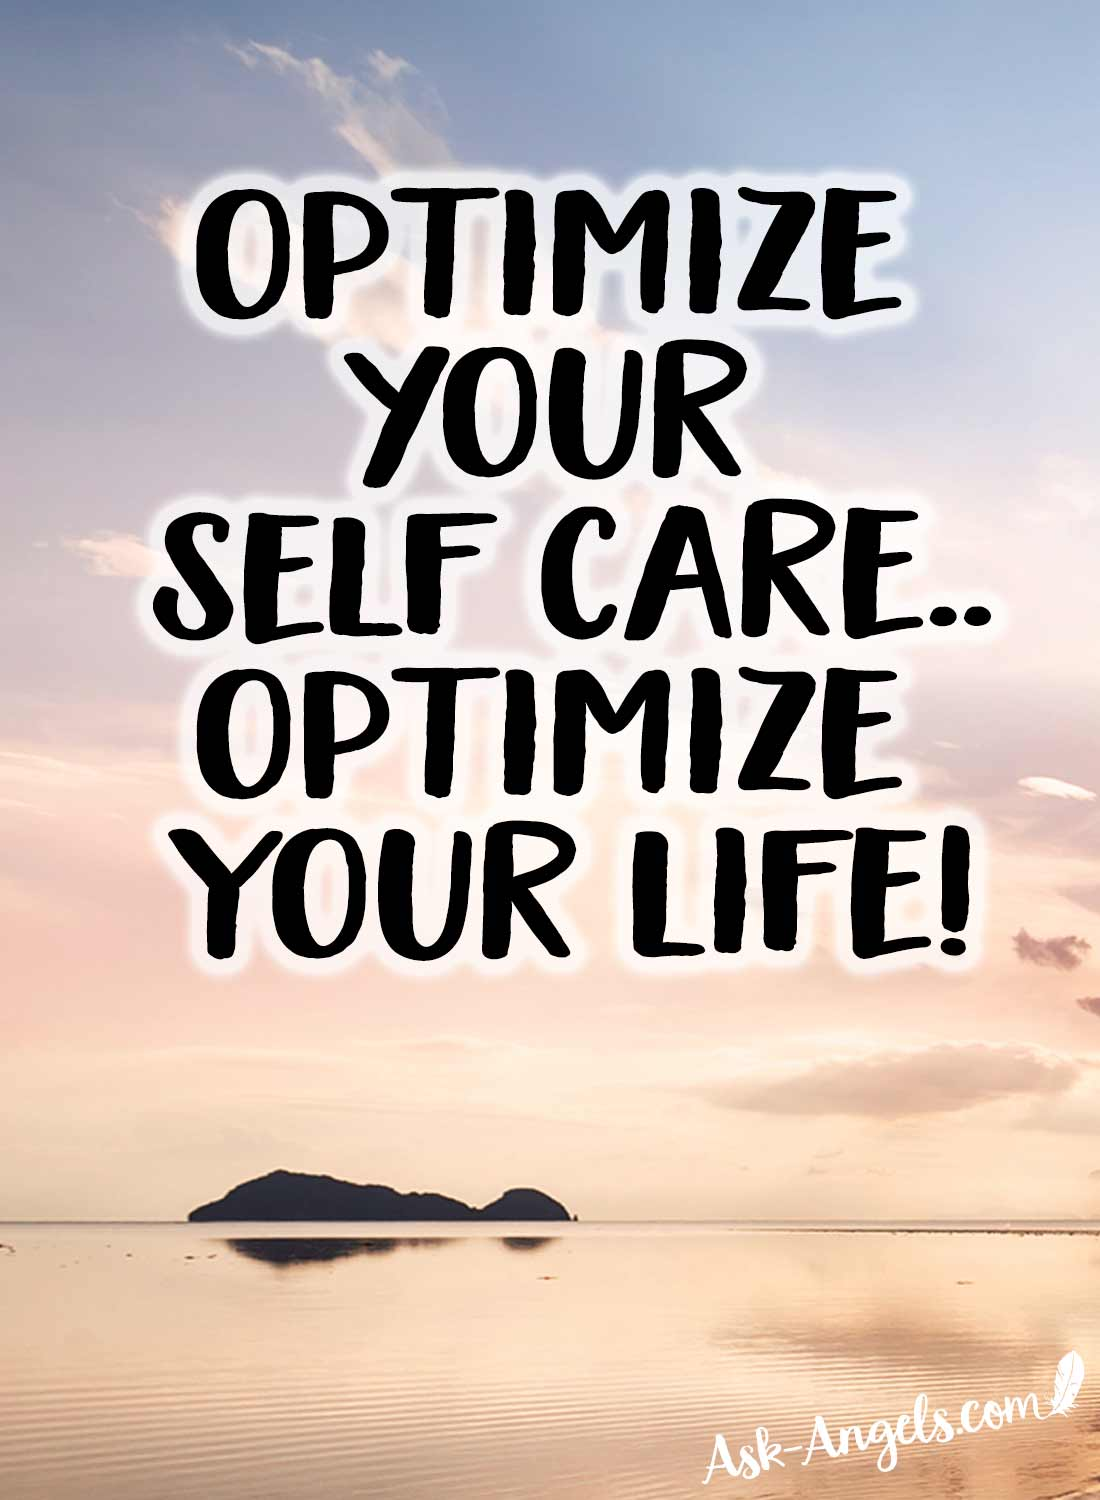 Optimize your self care... Optimize your life!